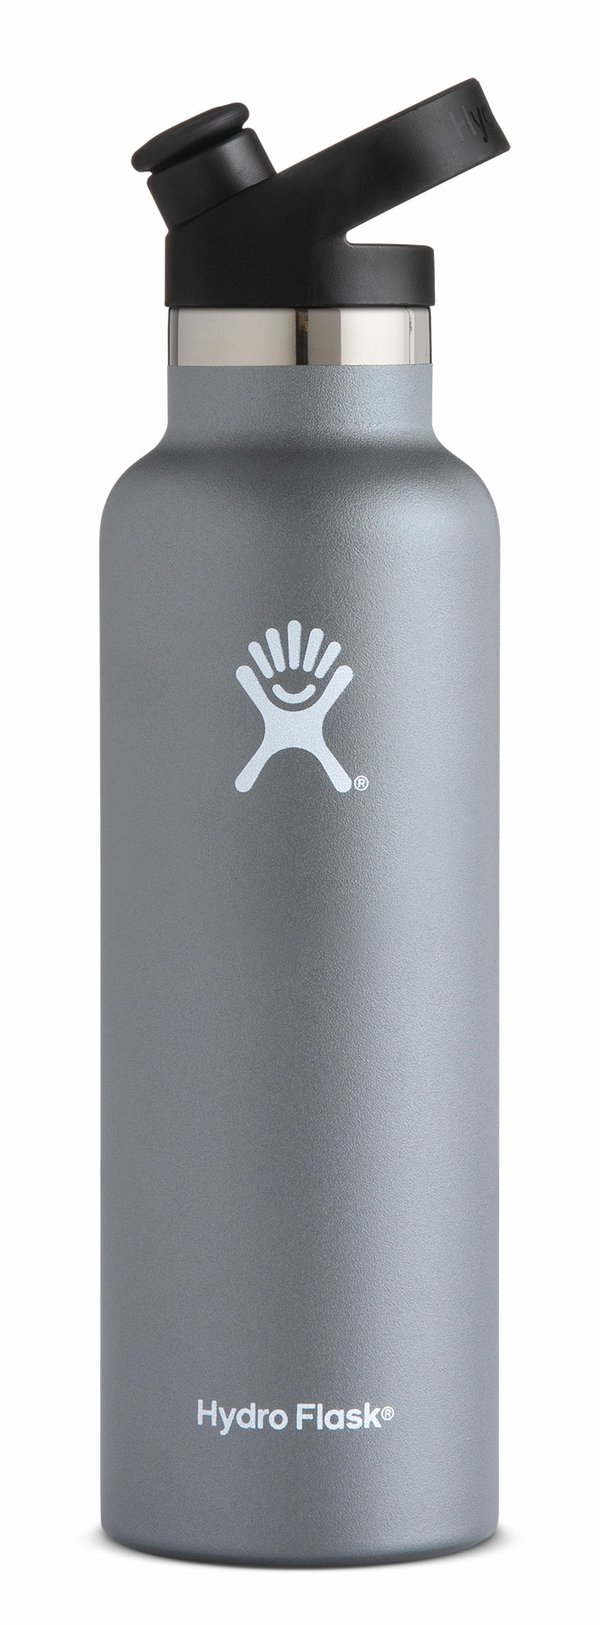 Hydro-Flask-21-oz-Standard-Mouth-with-Sport-Cap-Graphite.jpg